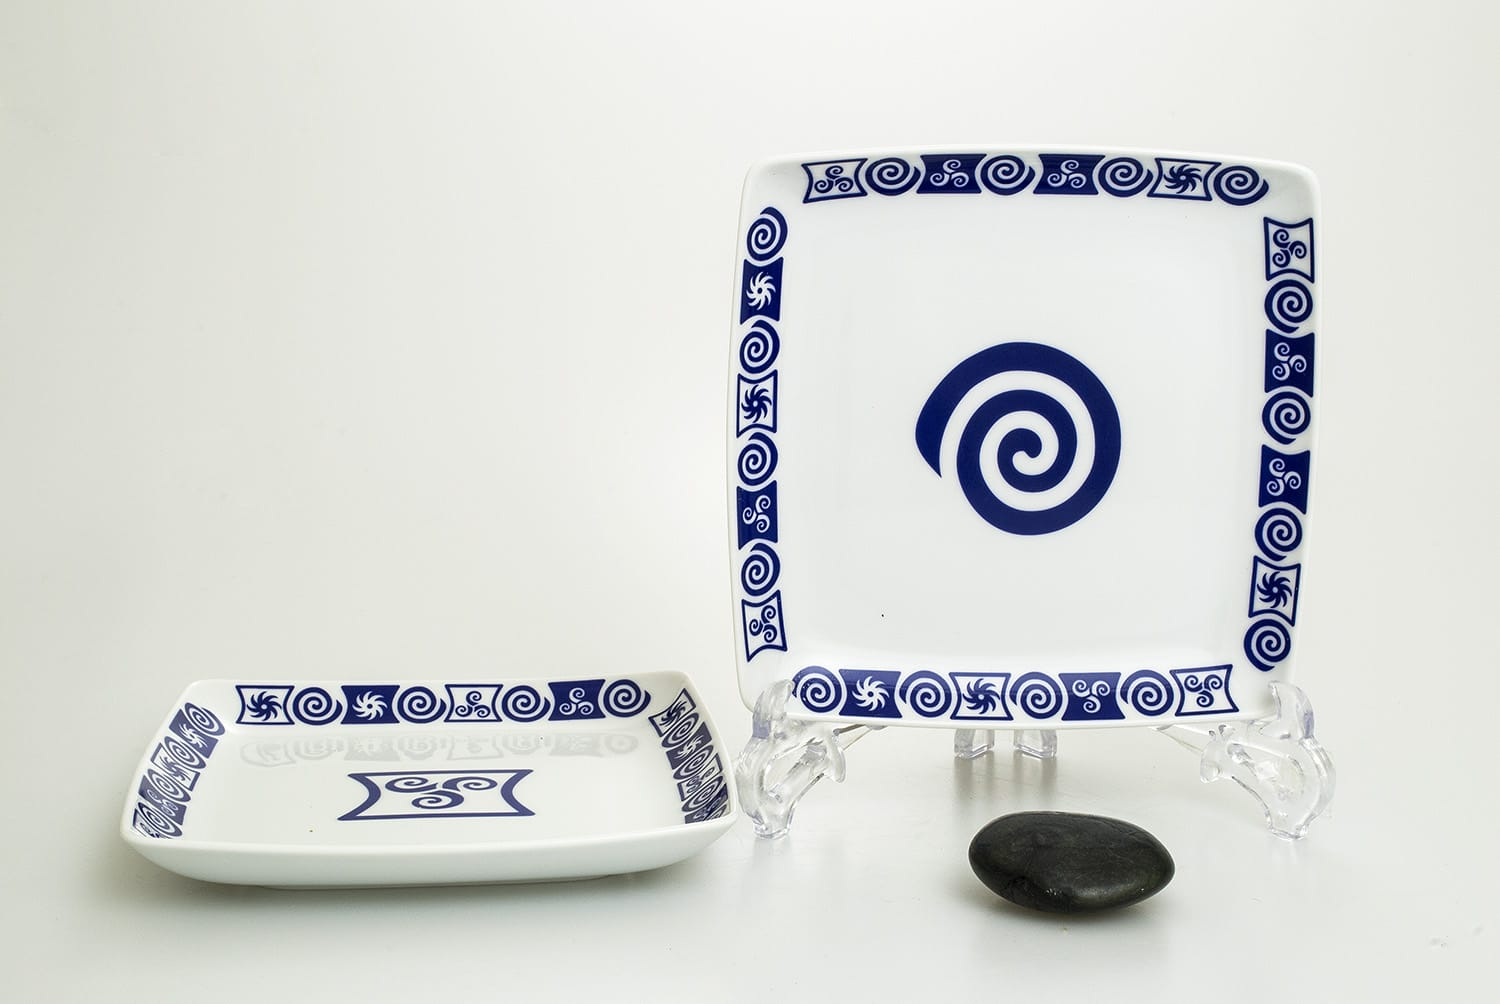 Appetizer plate. Frio design, Celta collection.